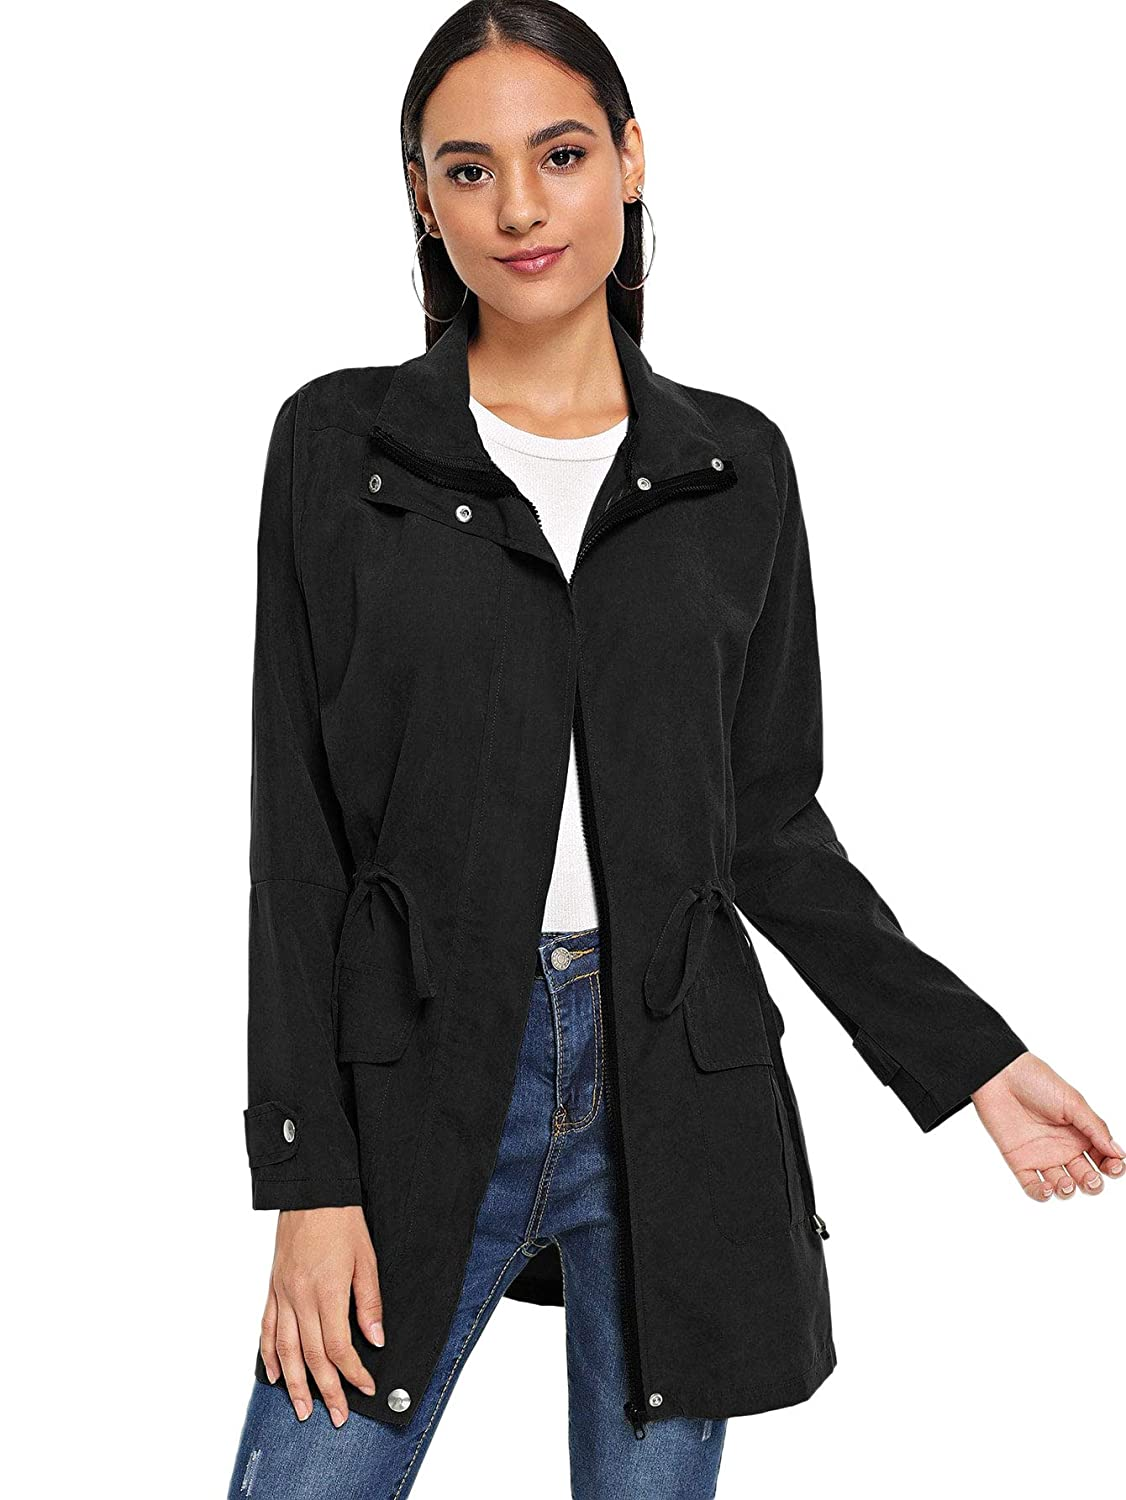 Black Floerns Women's Military Drawstring Zip Up Jacket Coat with Pocket